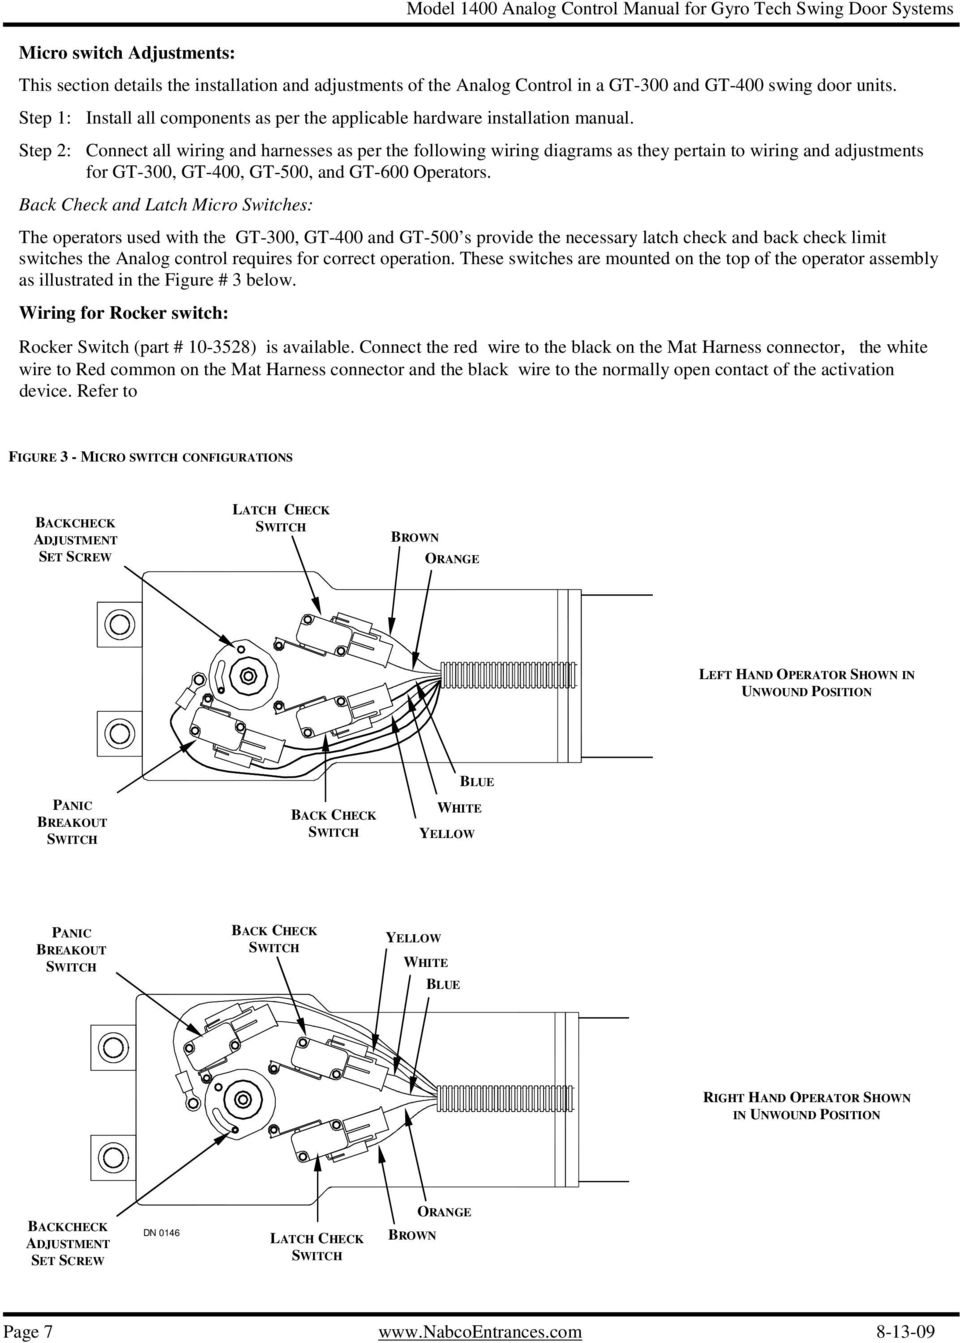 Analog Control Wiring Adjustment Manual For Gyro Tech Swing Door 70 5600 Car Wire Harness Diagram Step 2 Connect All And Harnesses As Per The Following Diagrams They